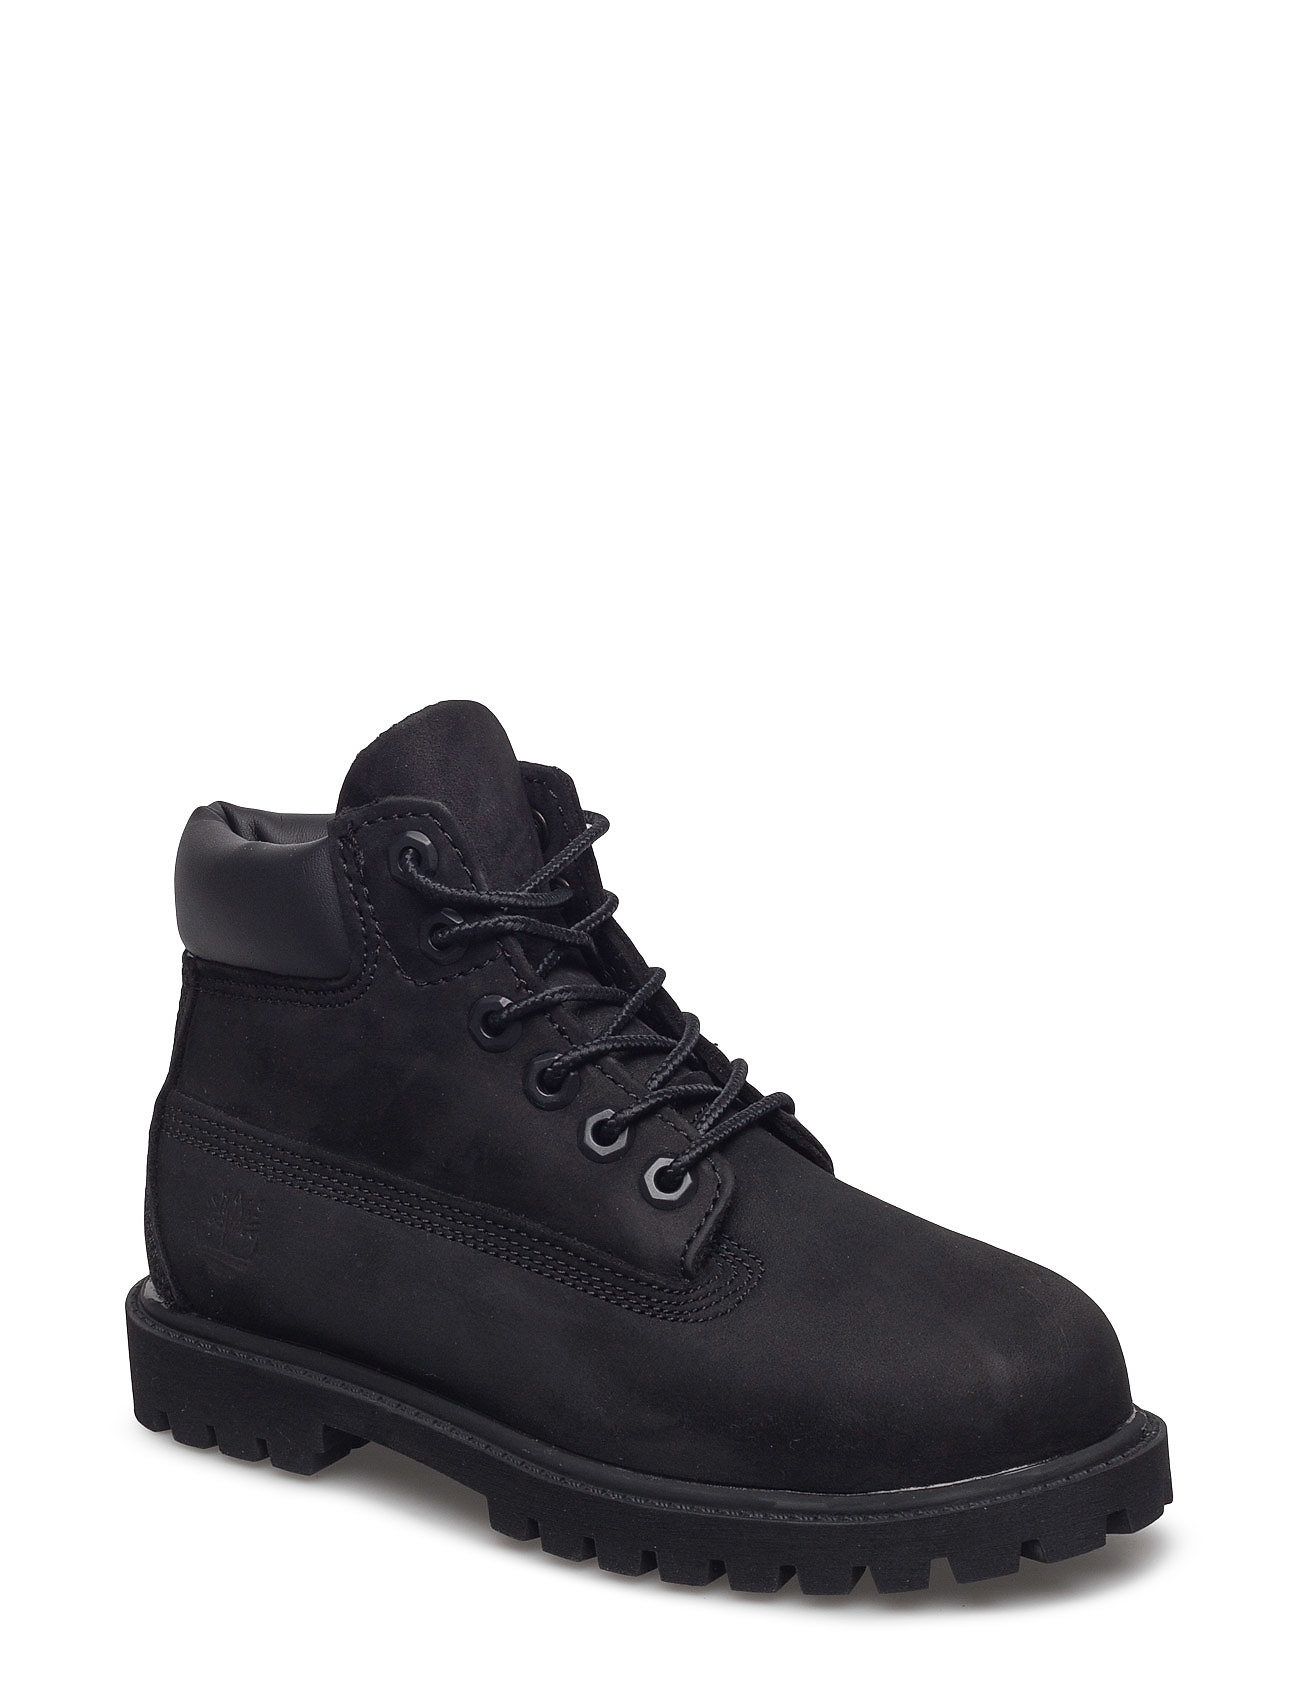 good out x stable quality fashion style 6 In Premium WP Boot